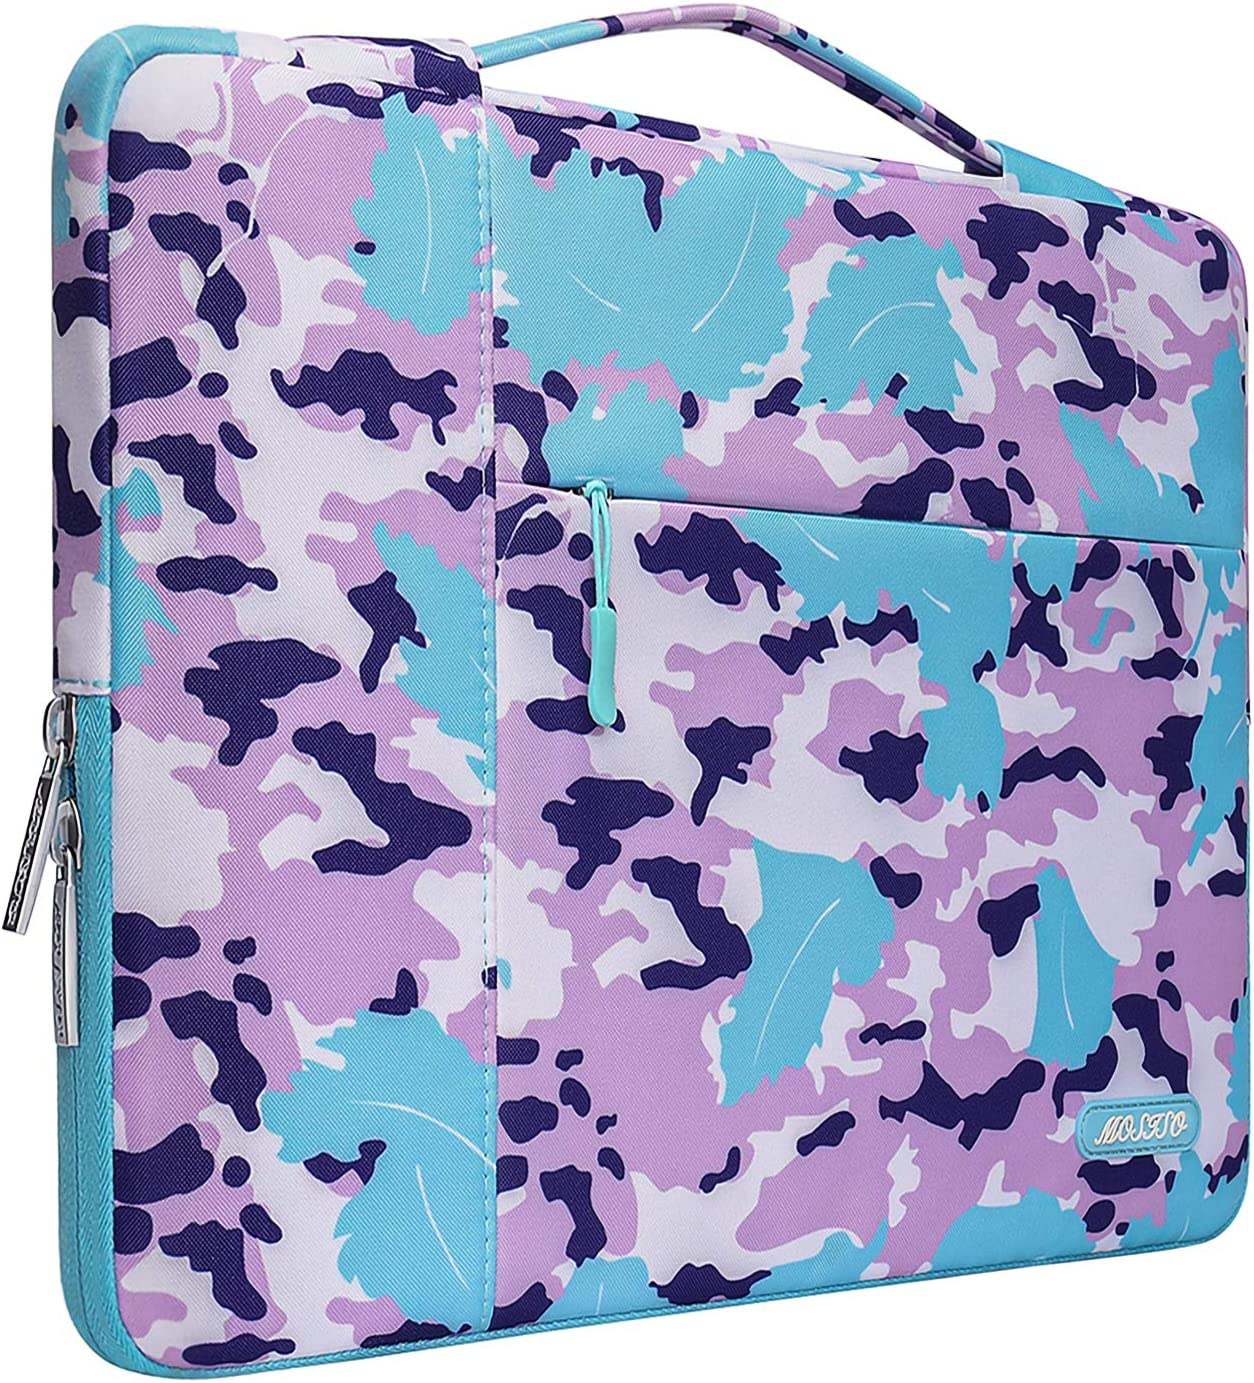 MOSISO Laptop Sleeve Compatible with Limited Special Price SALENEW very popular MacBook 13-13.3 inch Air M